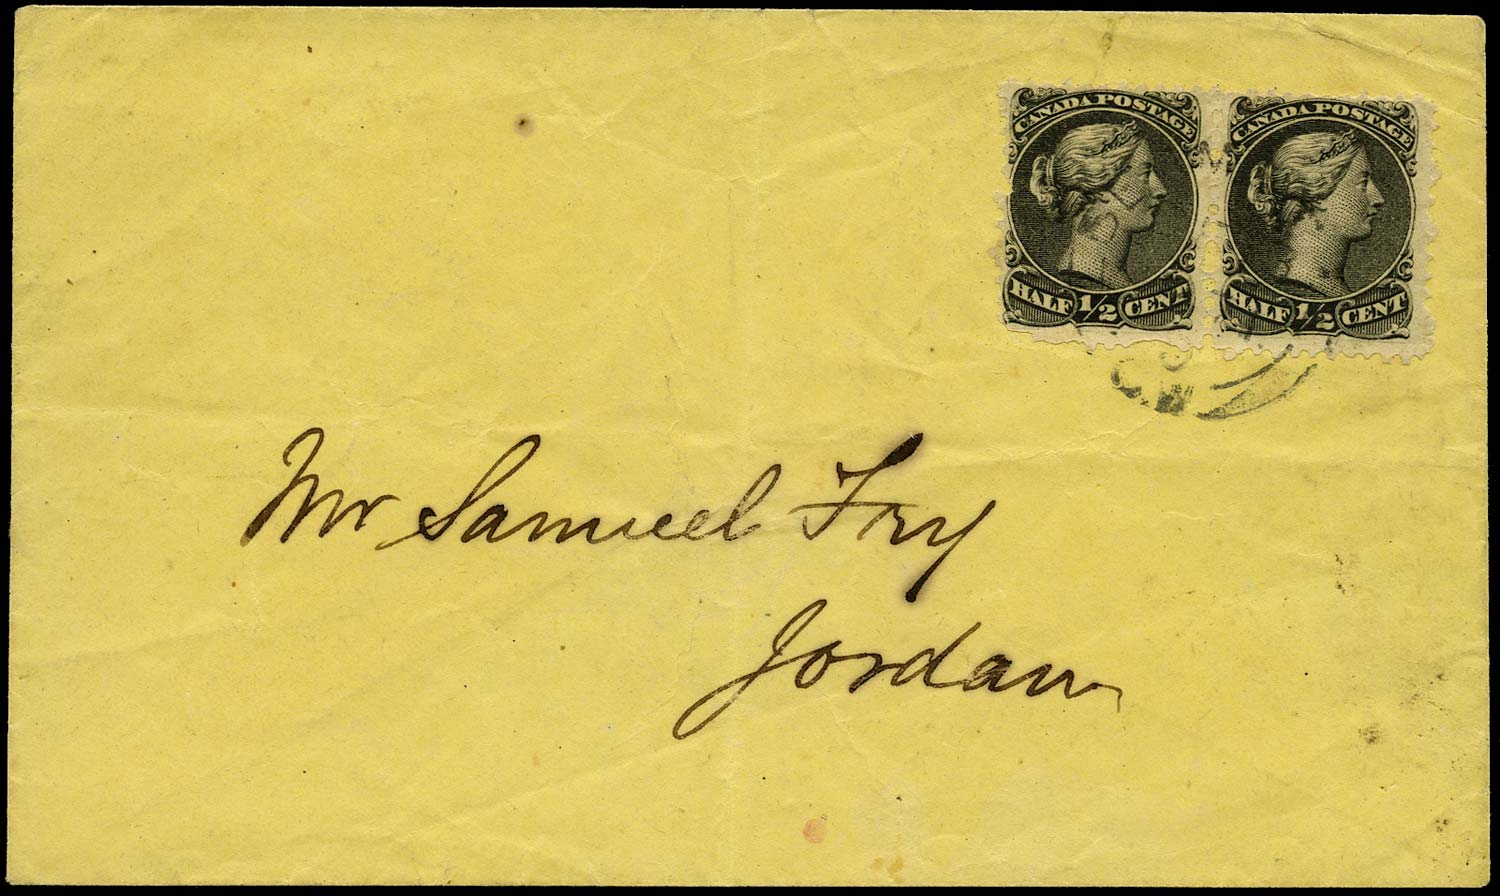 CANADA 1871  SG62 Cover with Large Queen ½c x2 printed matter rate